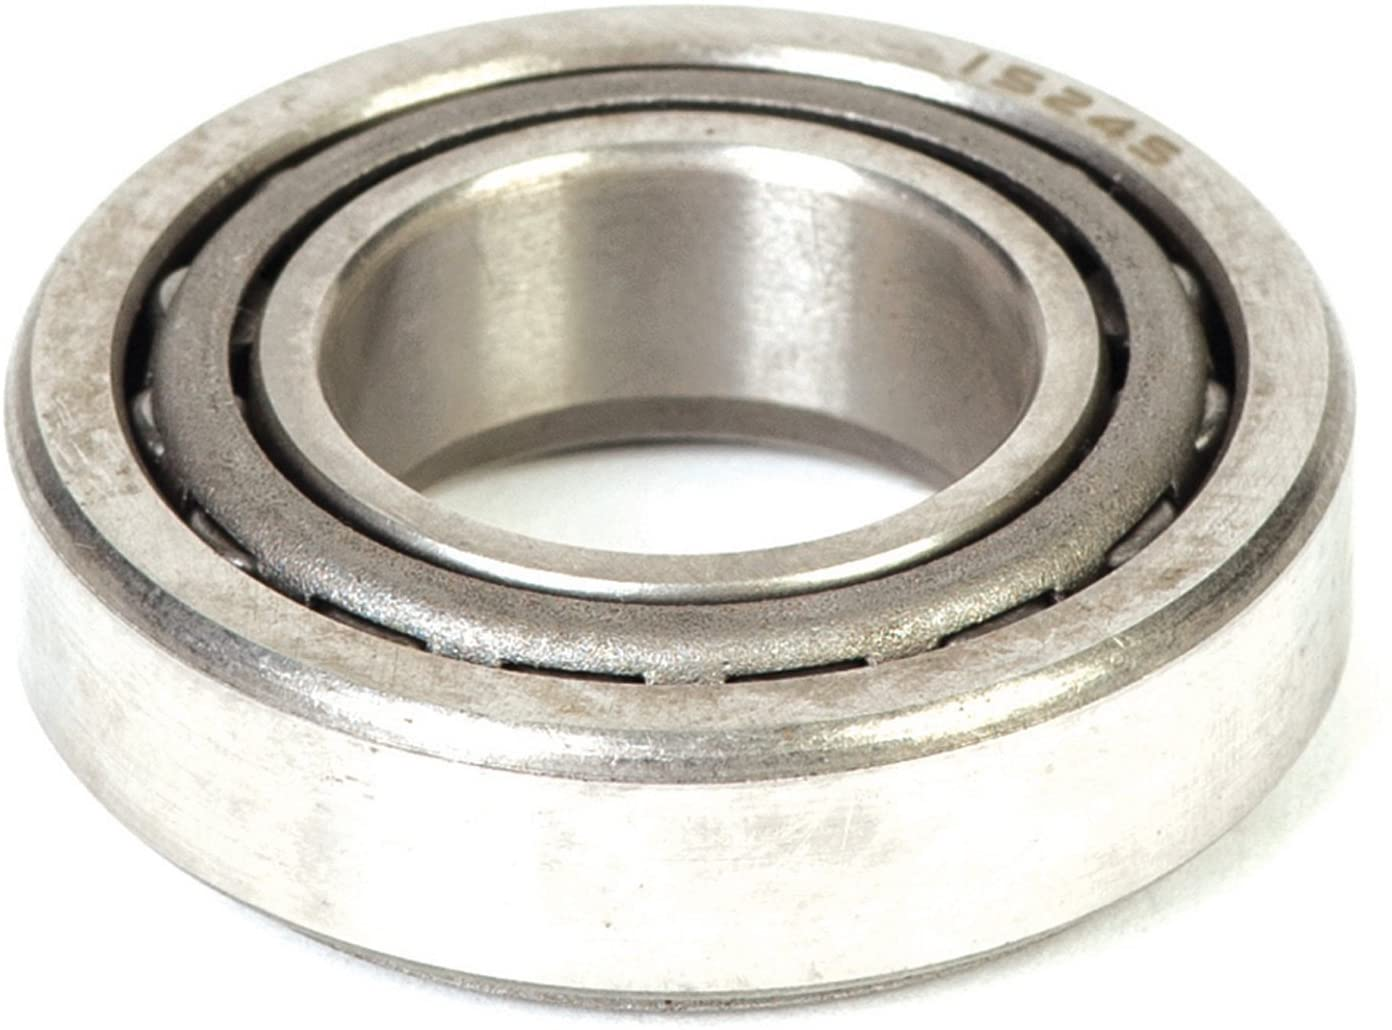 Husky 30811 5-Spoke Demountable Outer Bearing Cone and Cup - 6000 lb. Capacity